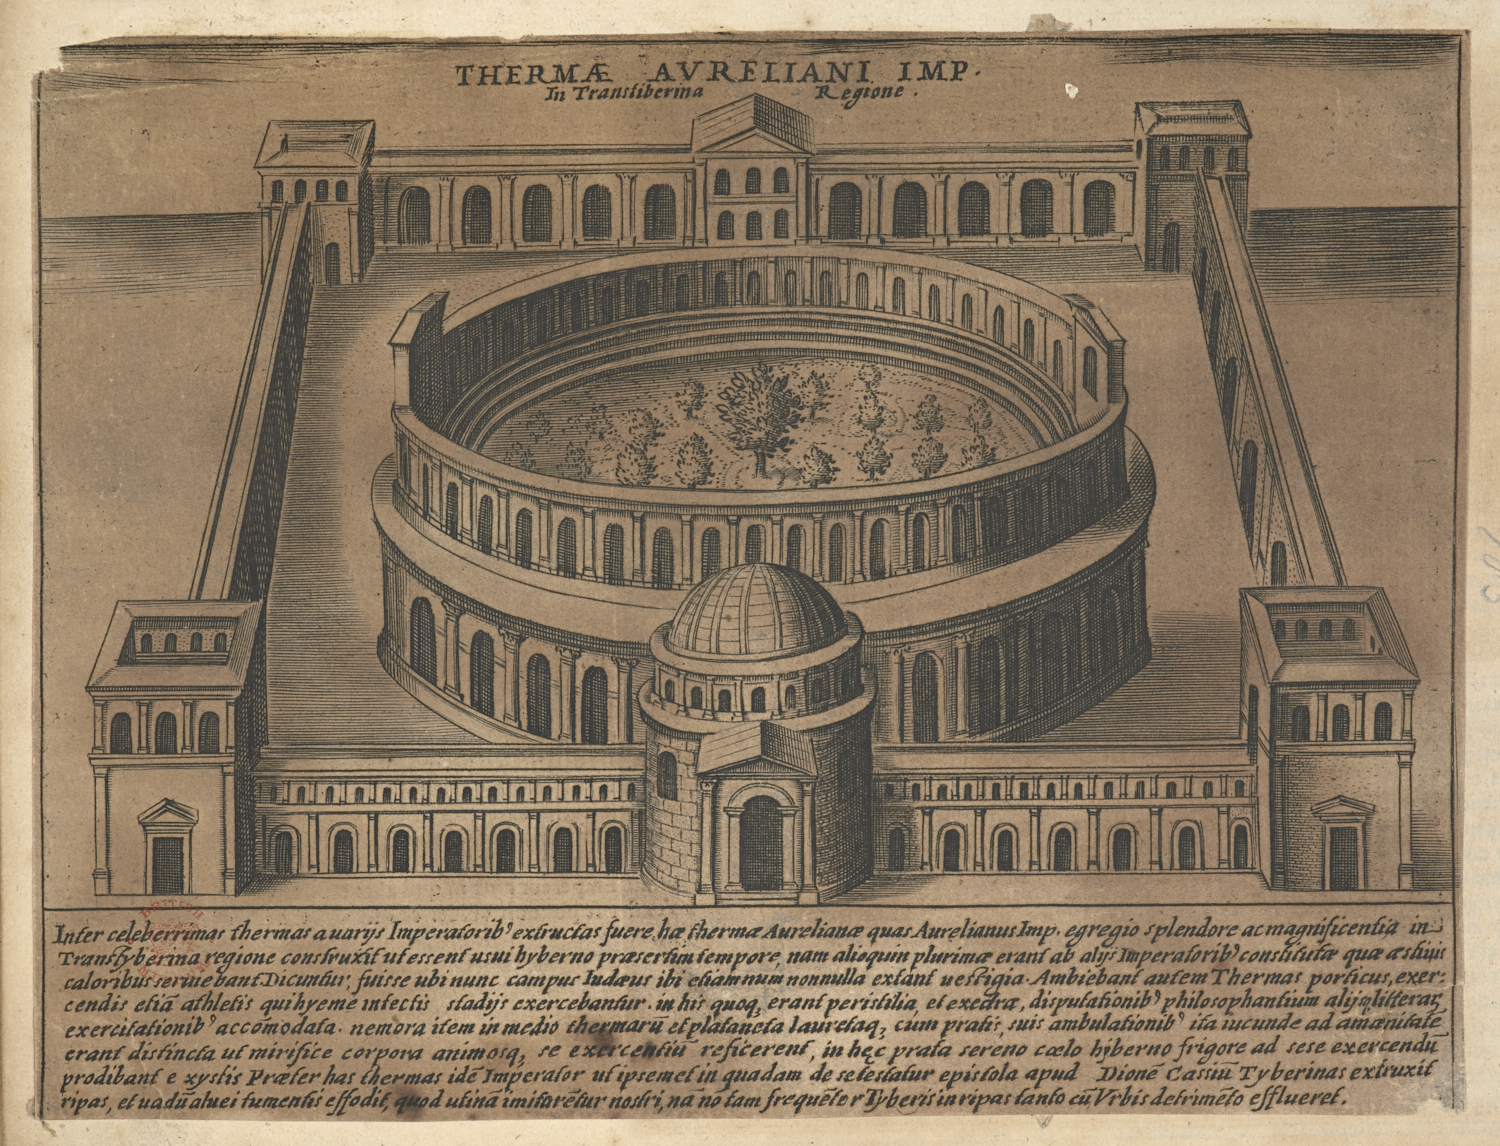 Giacomo Lauro (1583-1645), Thermae Aureliani Imp. in Transliberina Regione, 1612-1628, etching and engraving, Harley MS 5944, ff. 63 (no. 185).